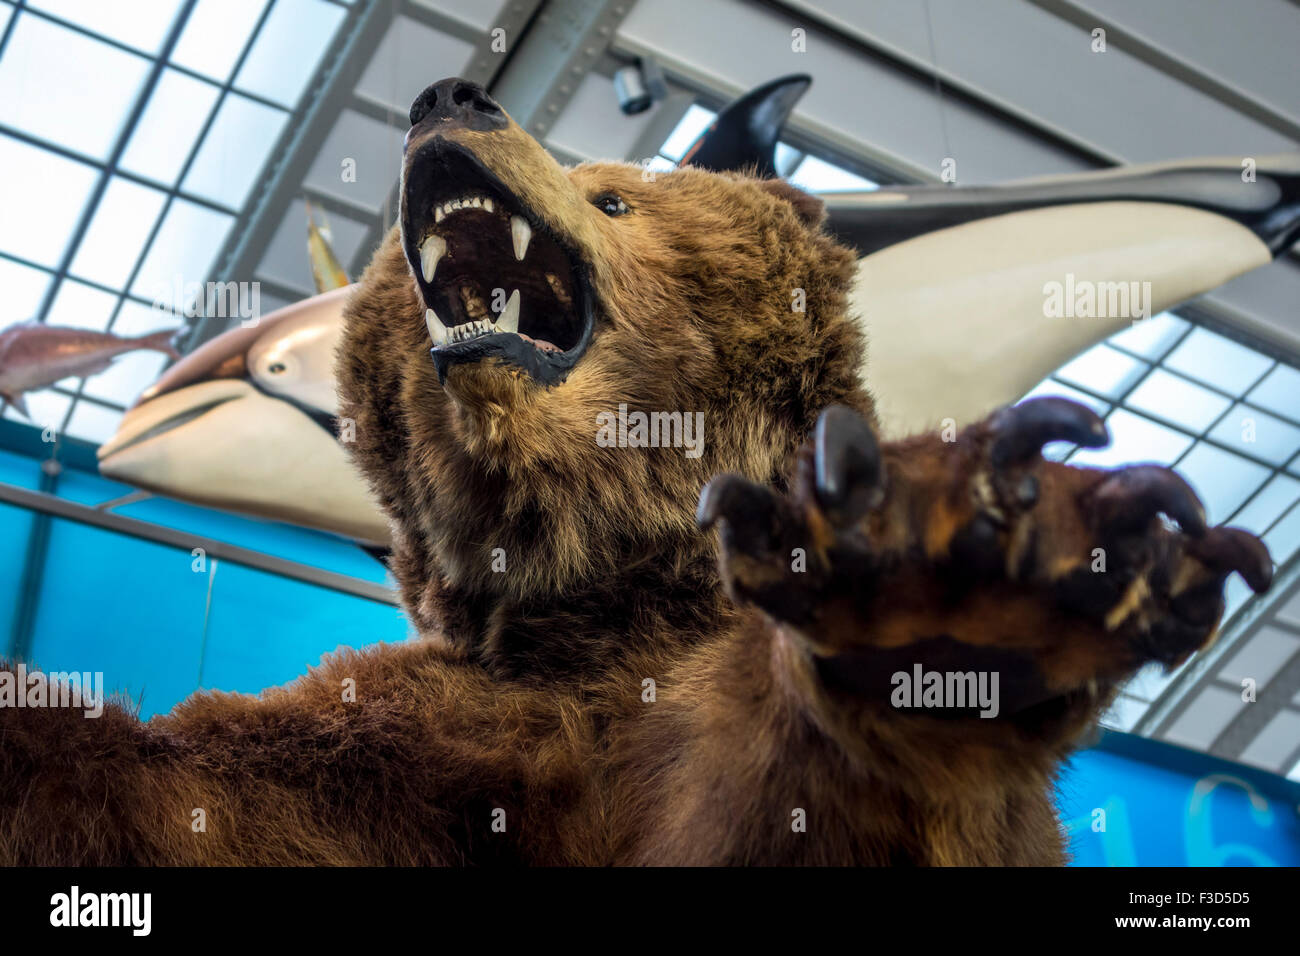 Stuffed bear at the Gallery of Evolution, Royal Belgian Institute of Natural Sciences / Museum of Natural History, - Stock Image